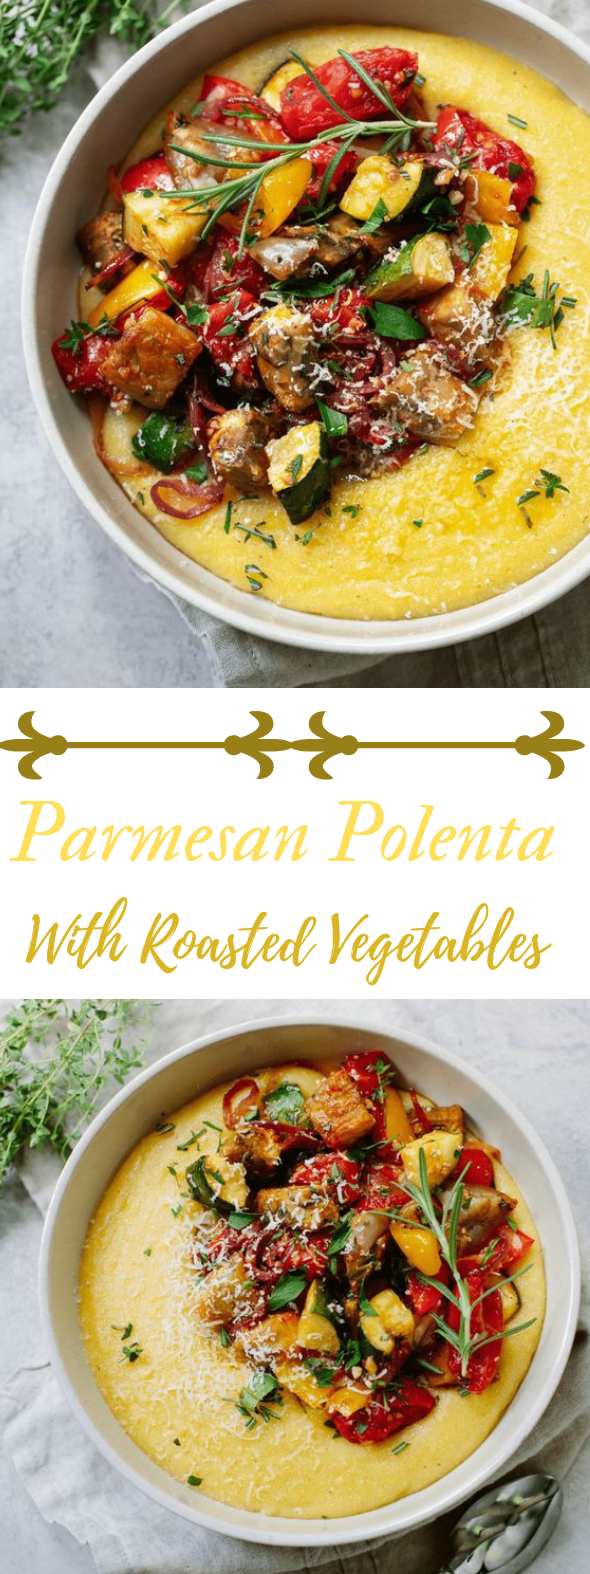 PARMESAN POLENTA WITH ROASTED VEGETABLES #vegetarian #roasted